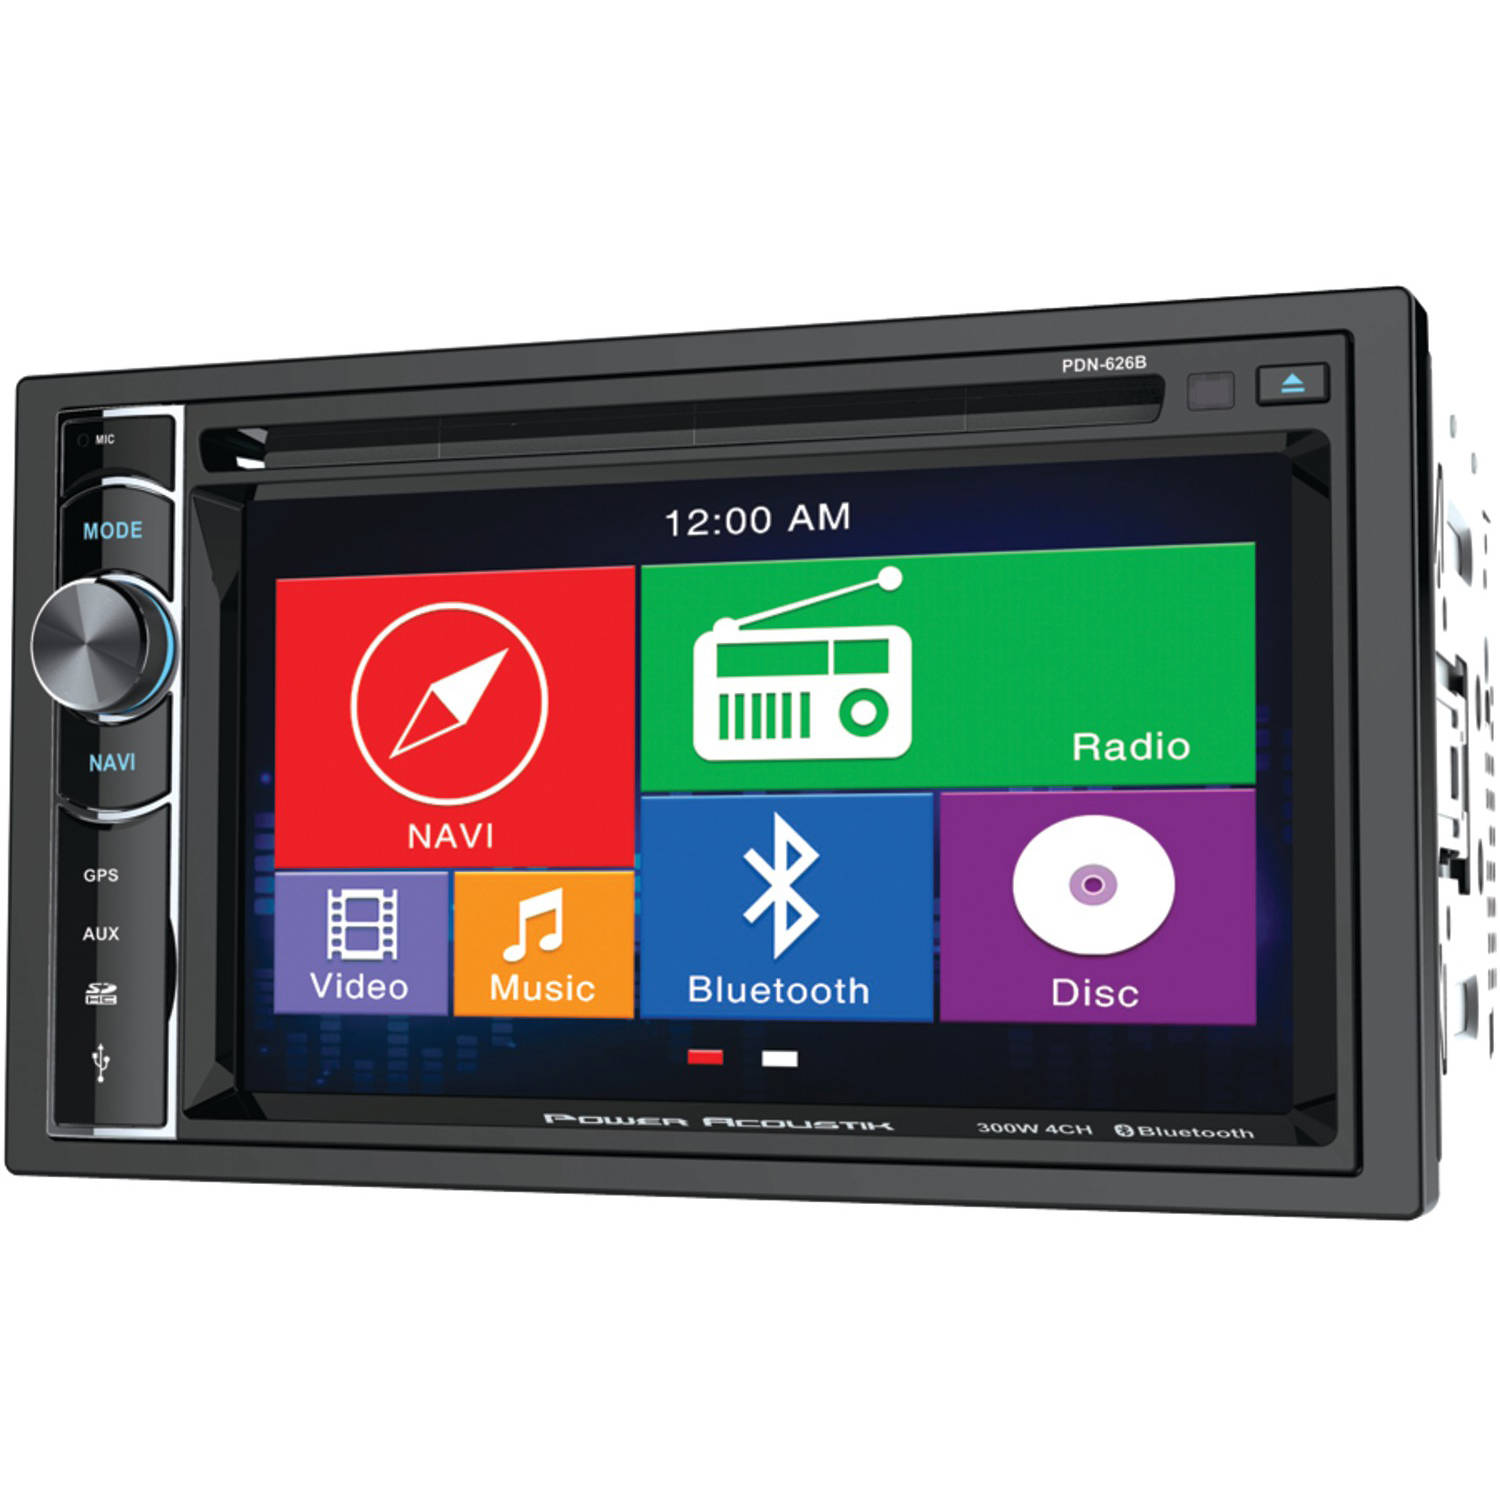 "Power Acoustik PDN-626B 6.2"" Double-DIN In-Dash GPS Navigation LCD Touchscreen DVD Receiver with Bluetooth"